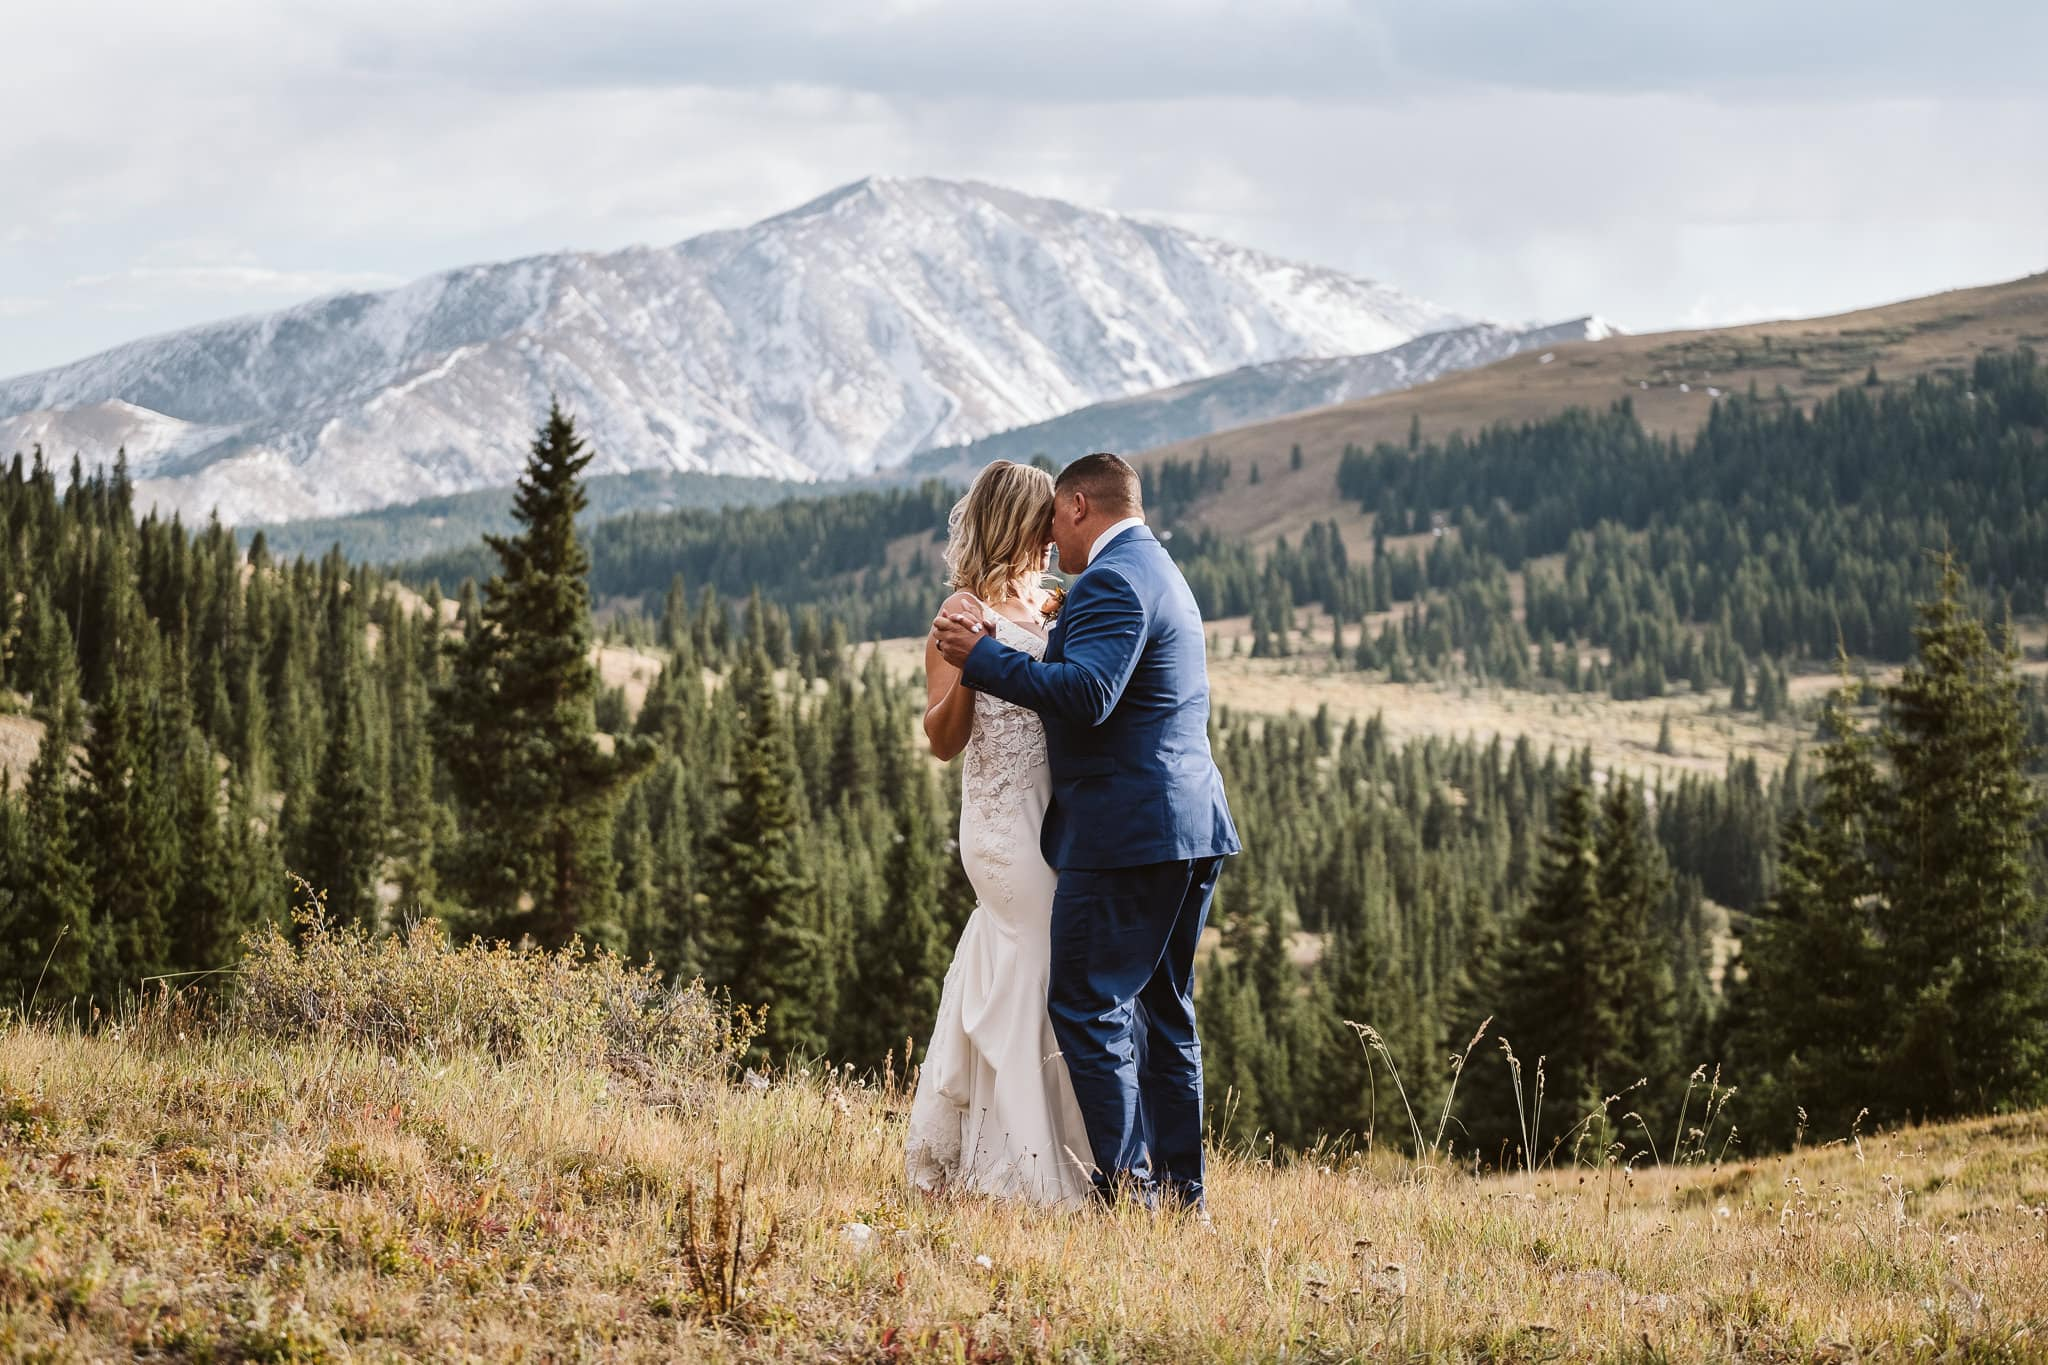 Bride and groom share first dance in the mountains